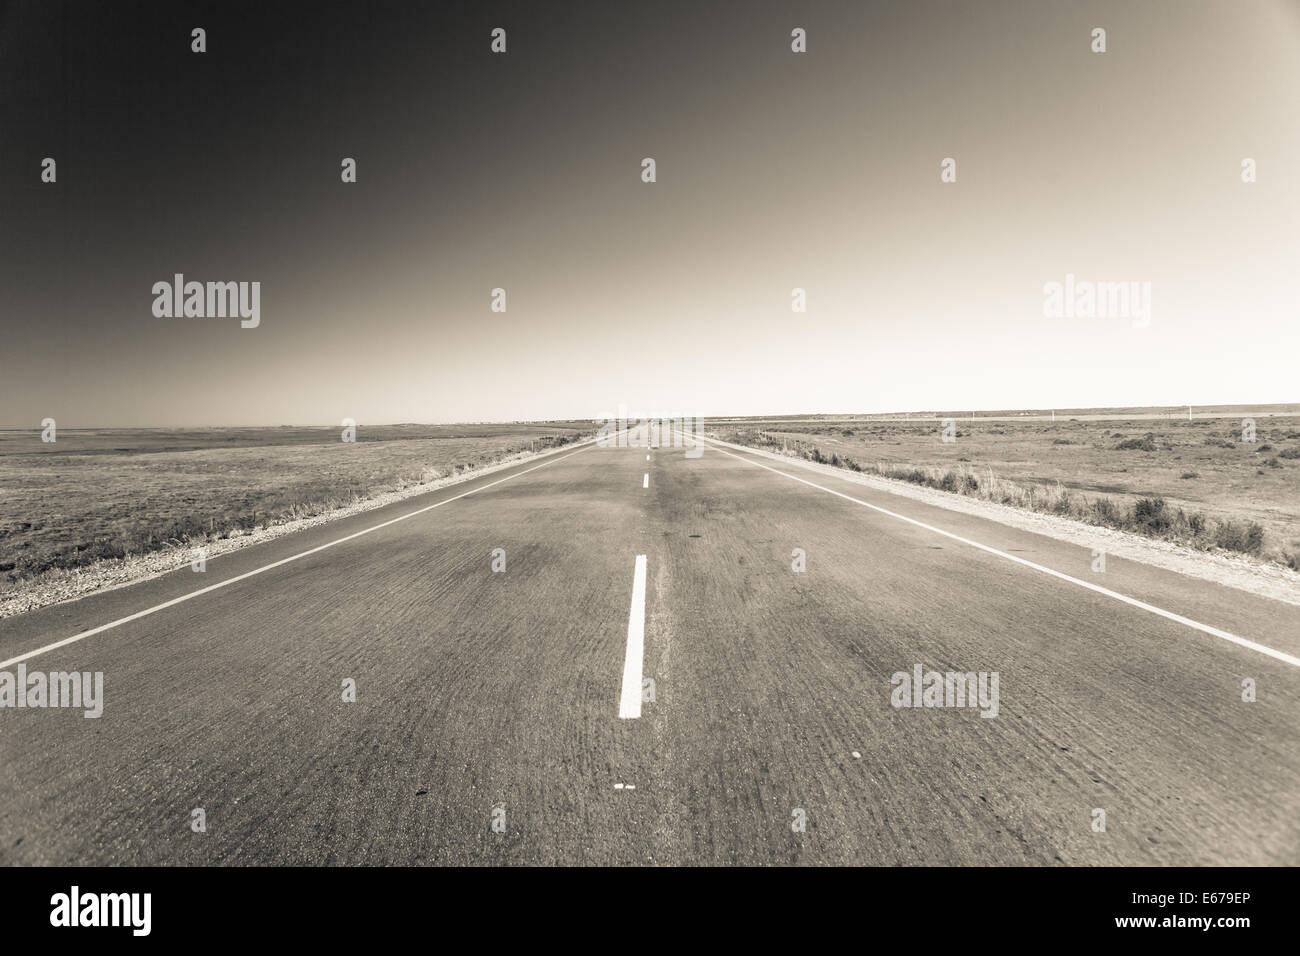 Road route long straight into horizon distance in vintage black white tones - Stock Image